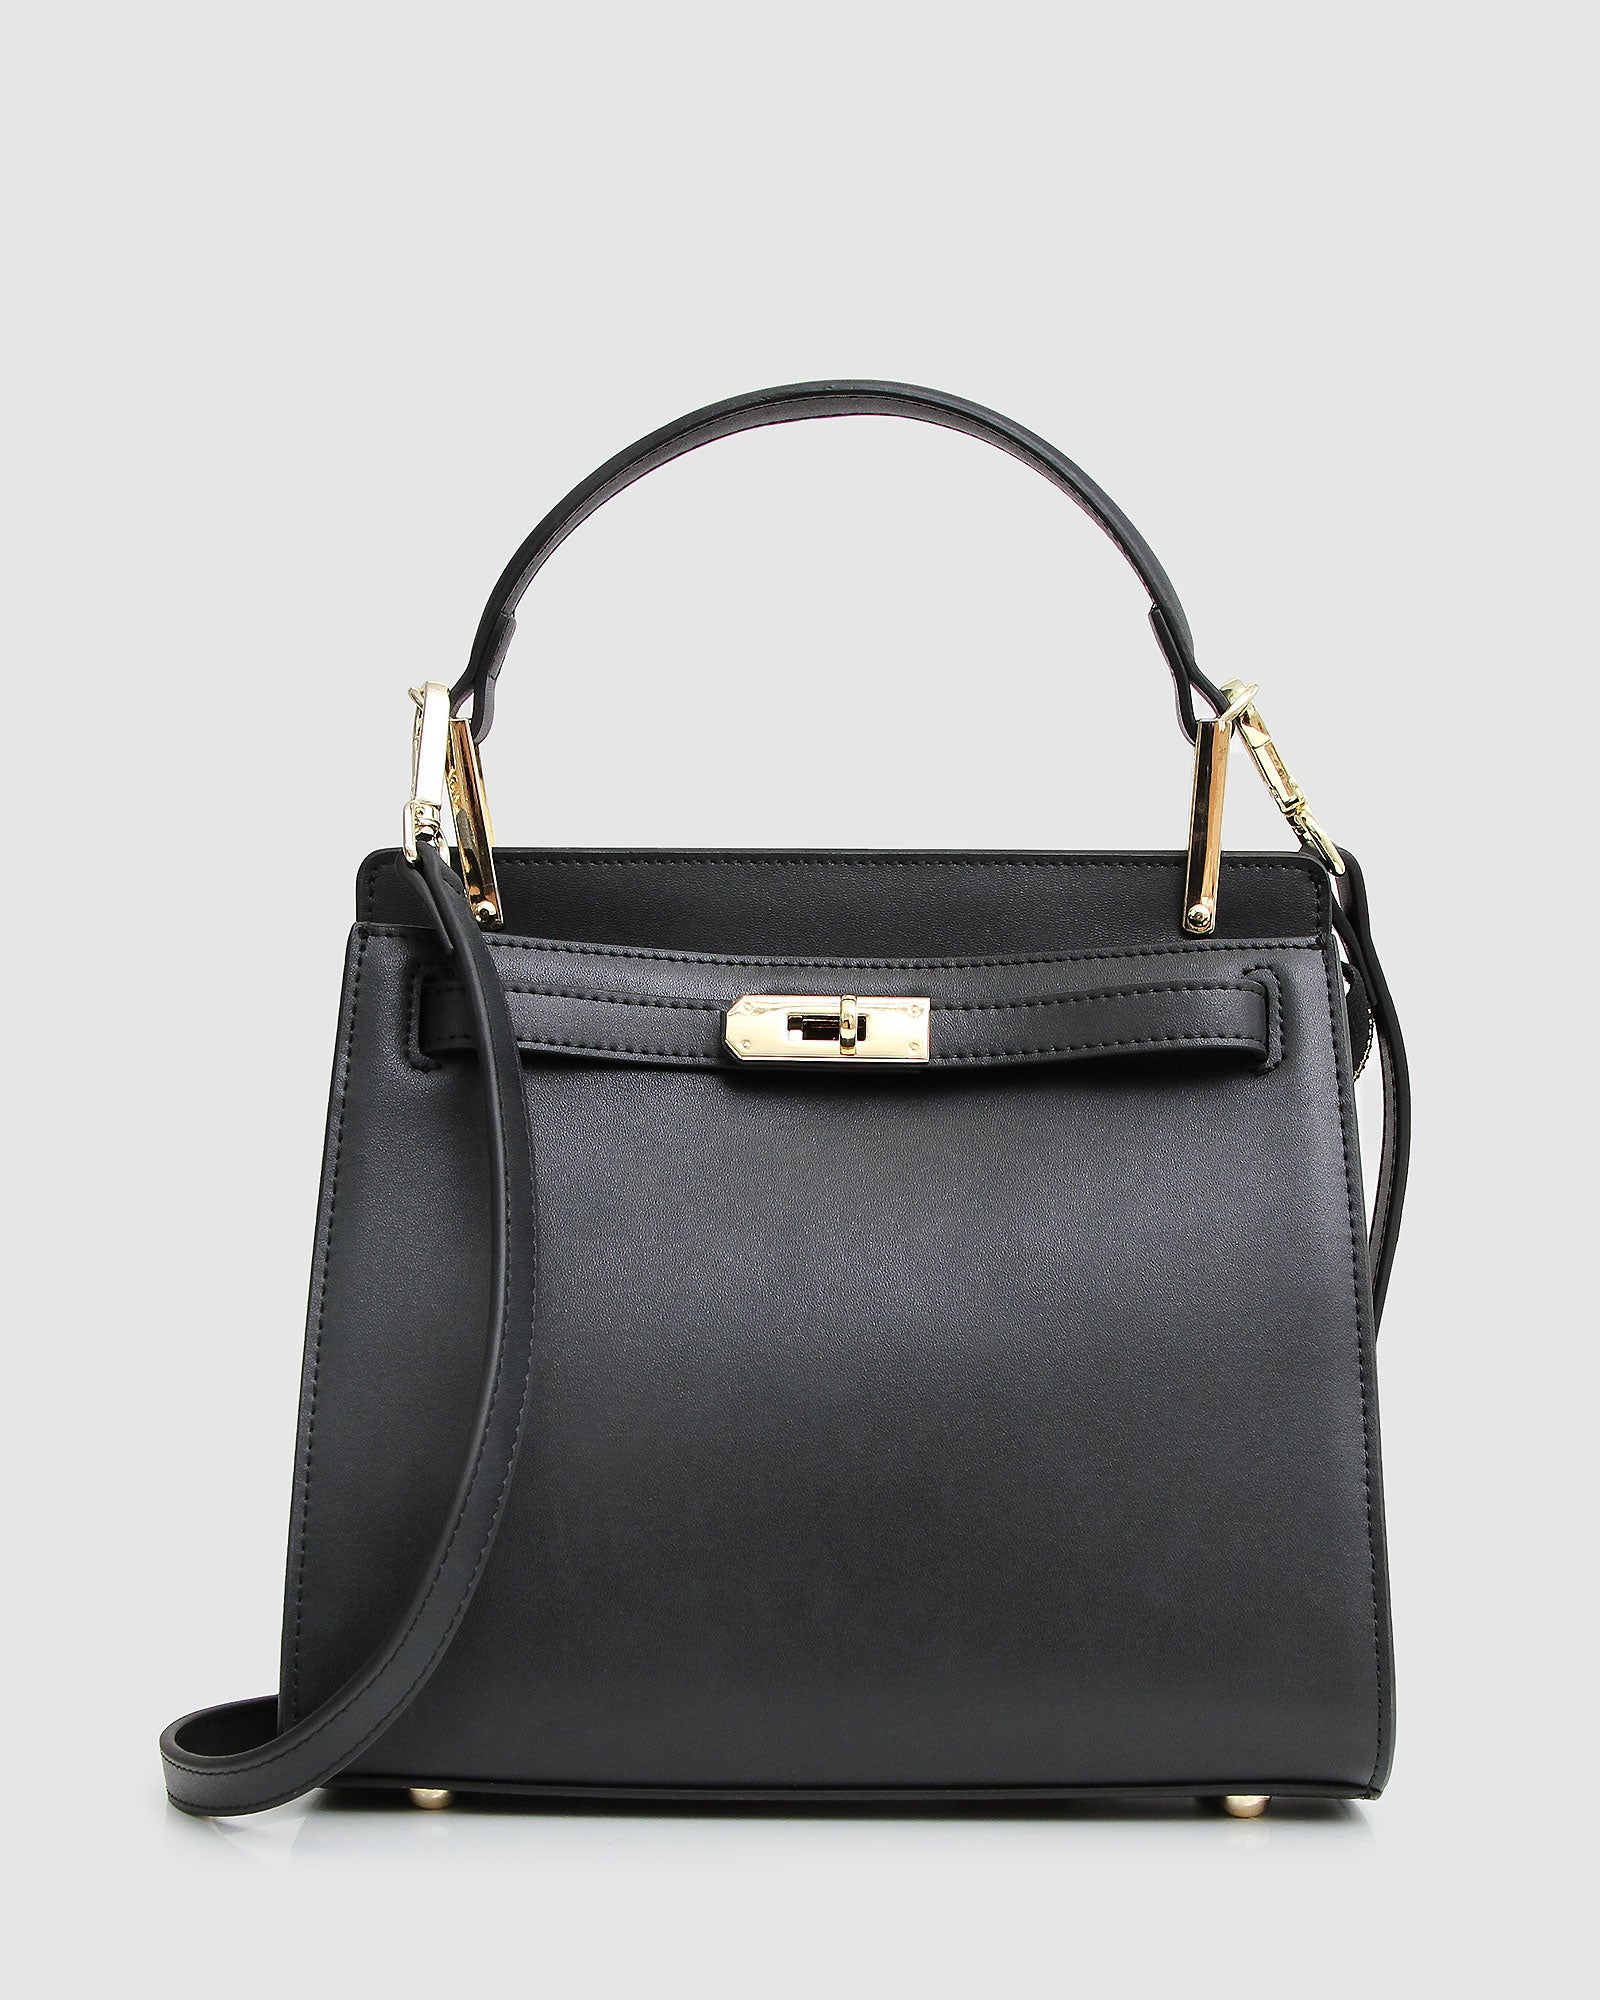 Simply Perfect Leather Cross-Body Bag - Black